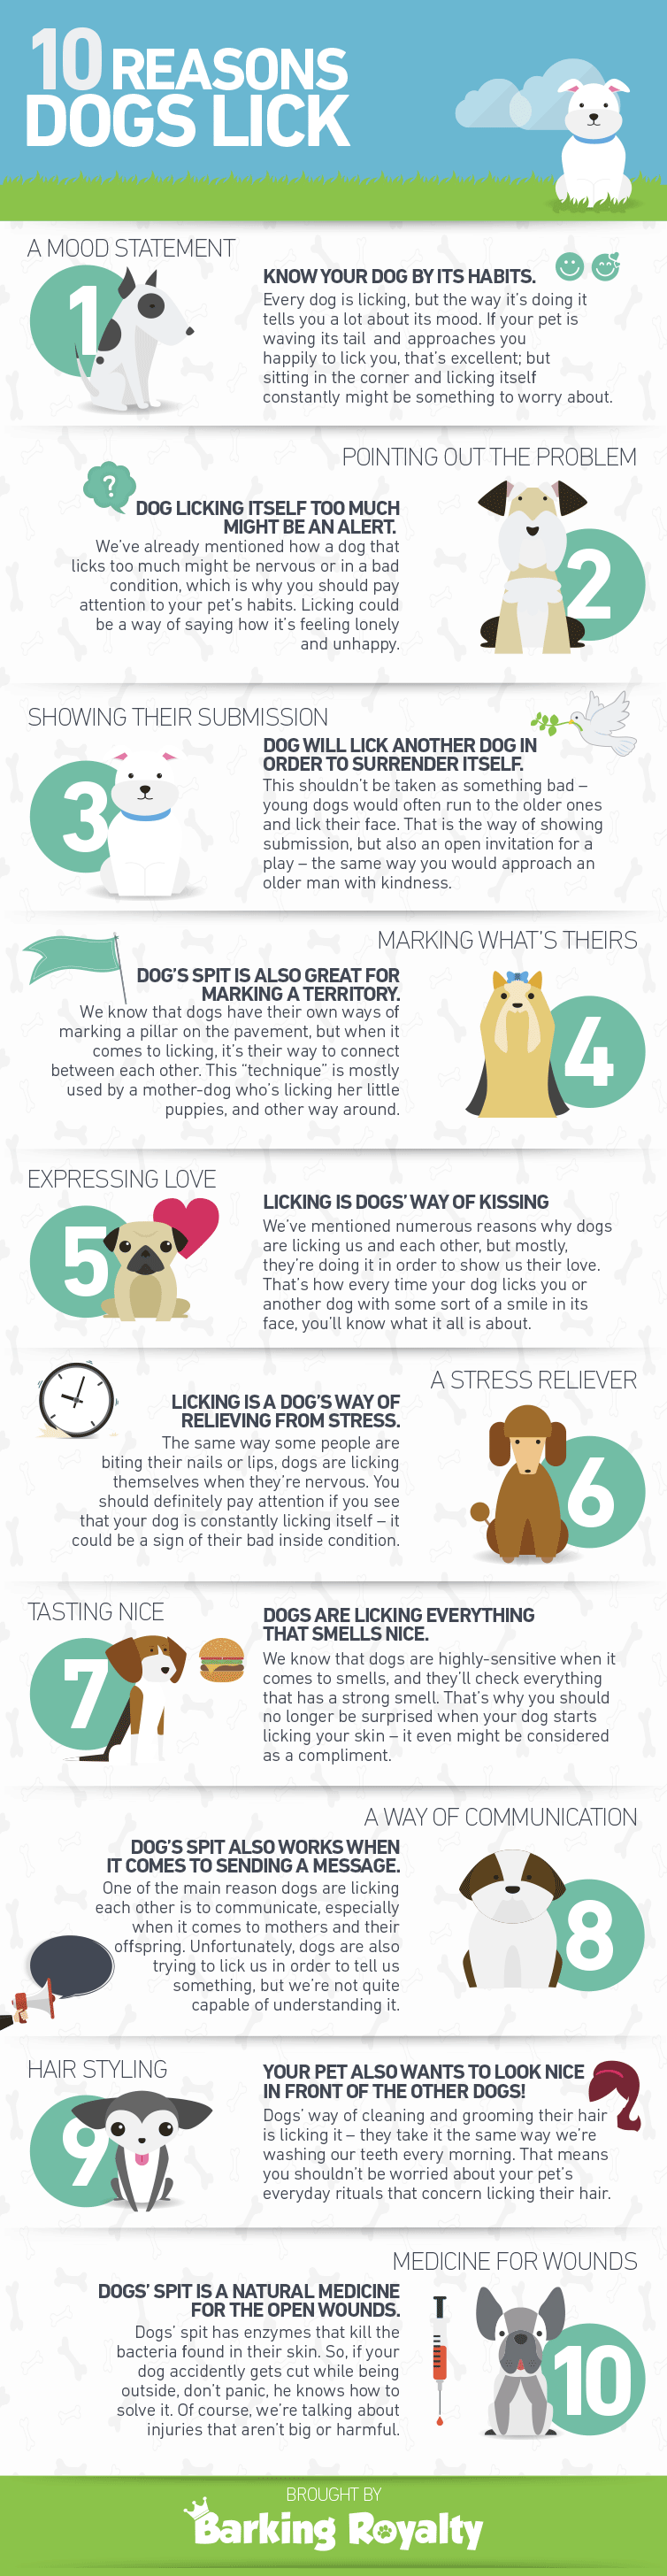 why do dogs lick infographic by barkingroyalty